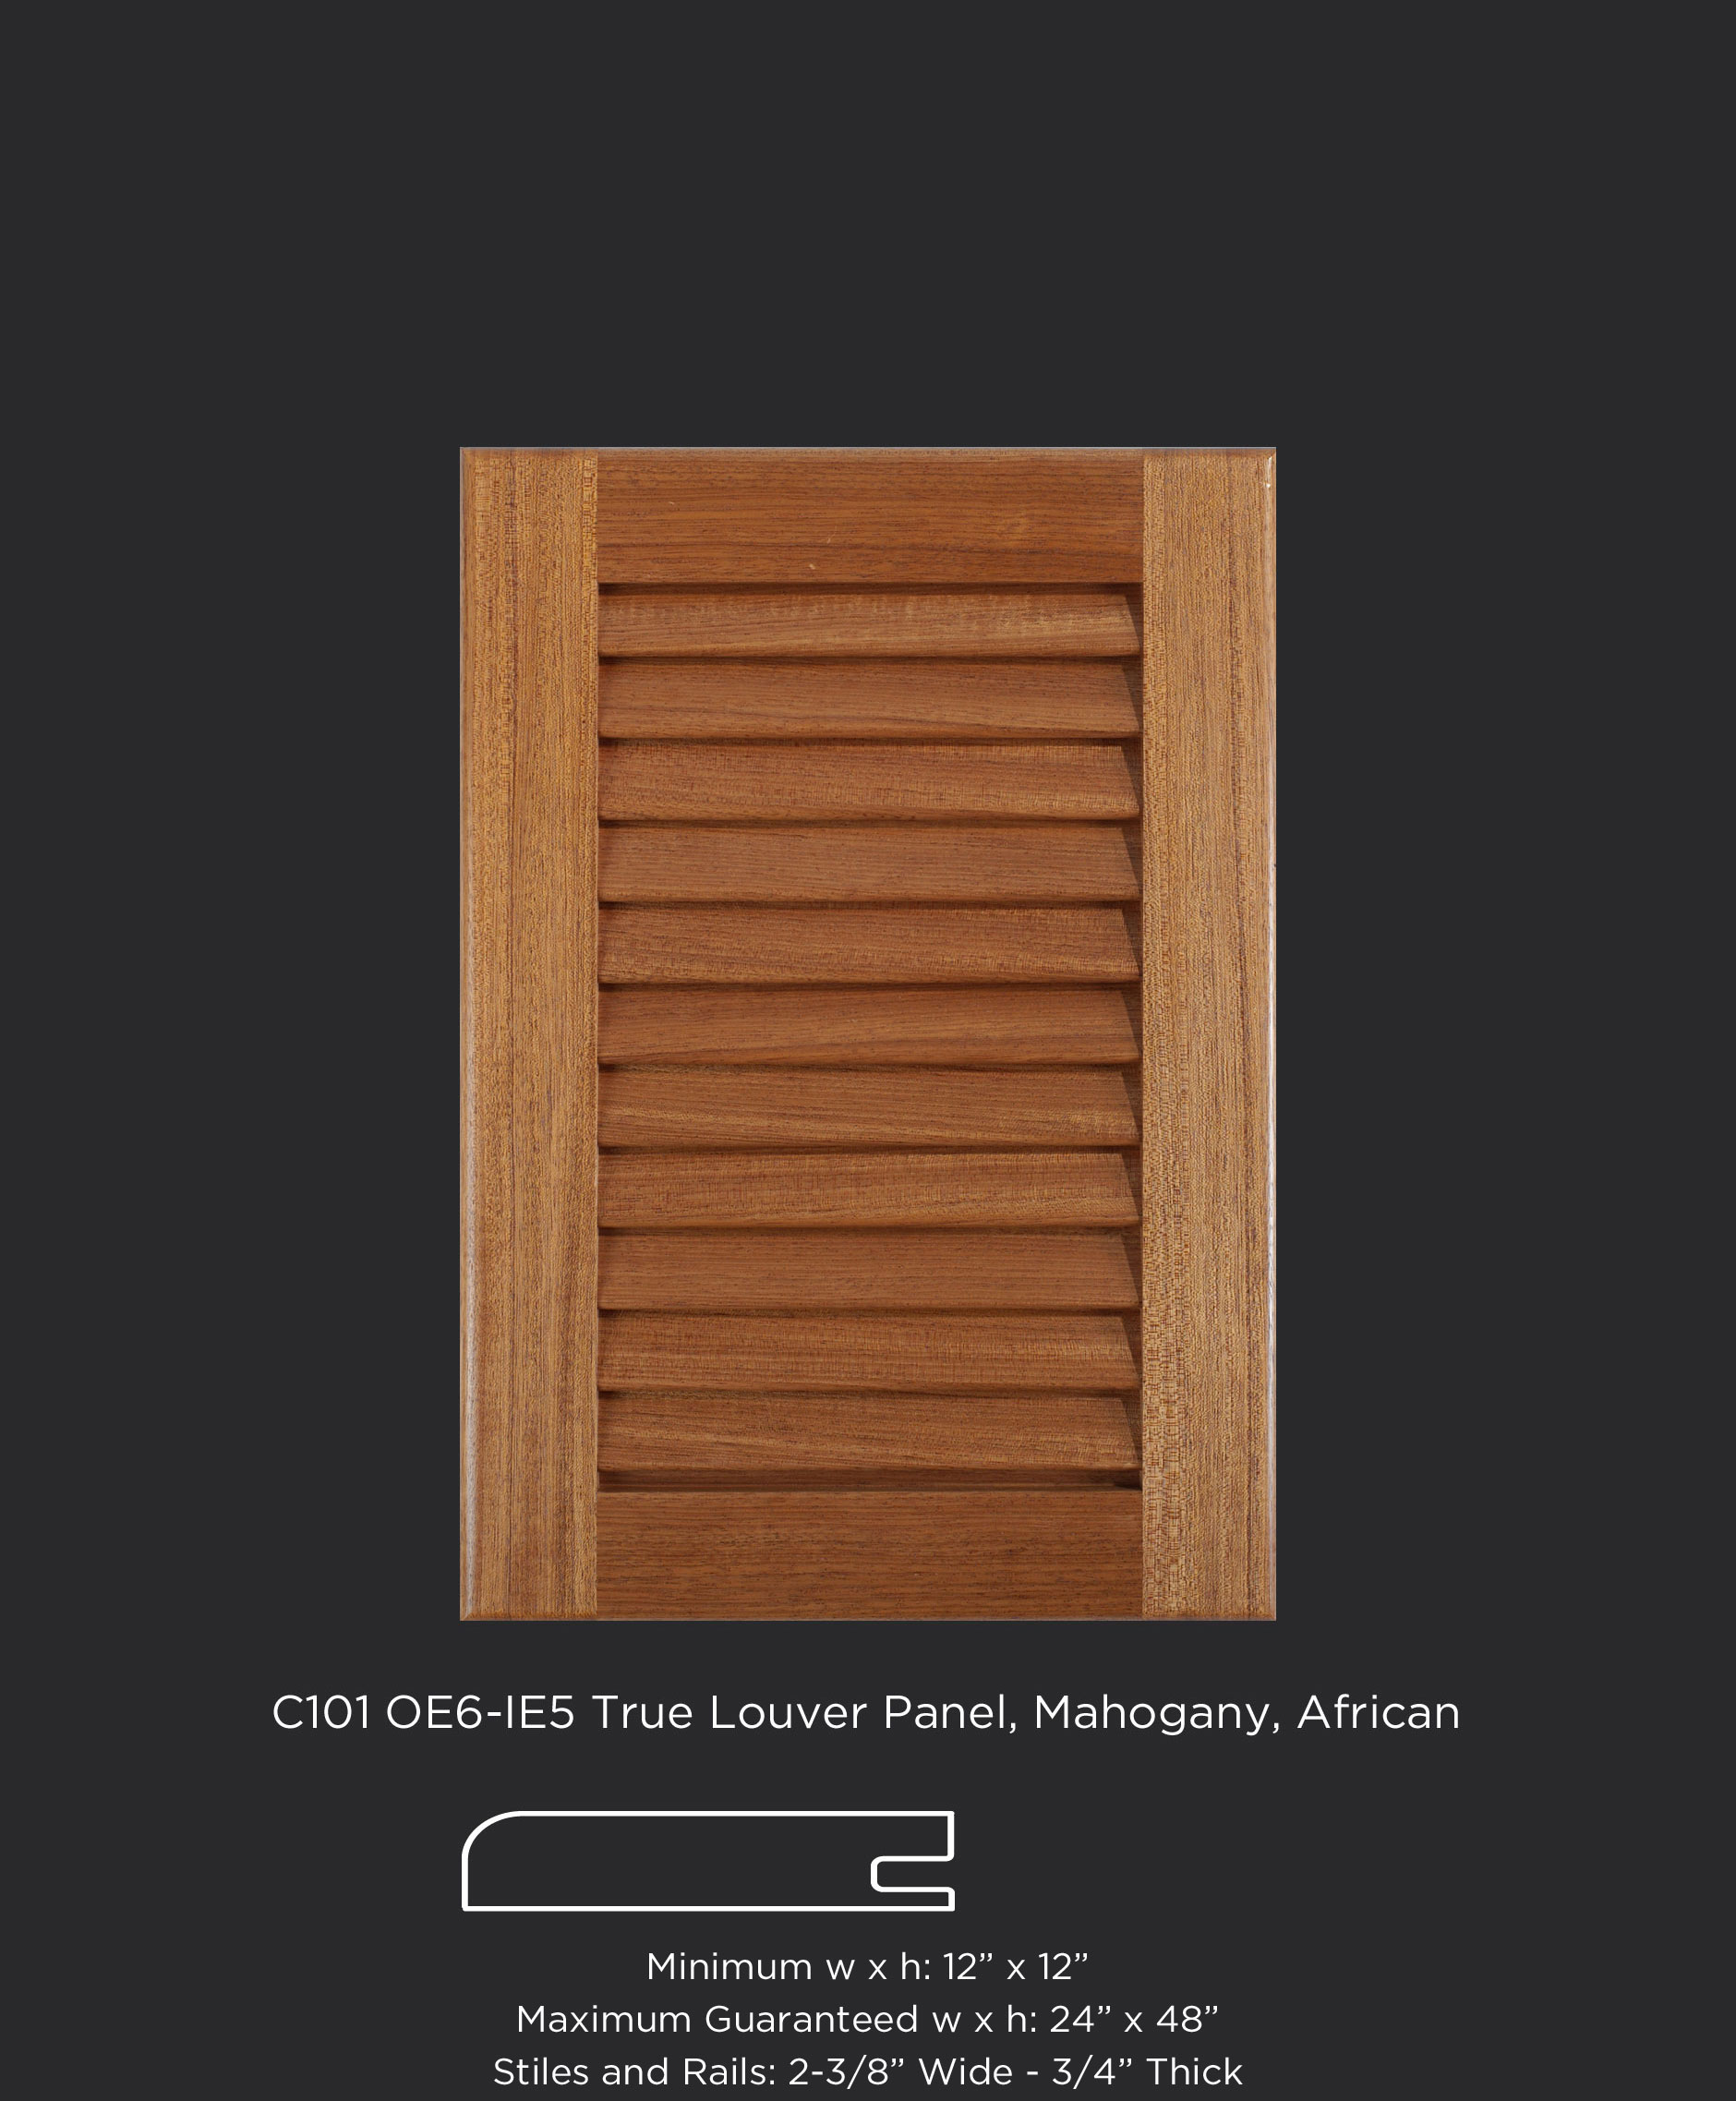 Louvered Kitchen Cabinet Doors: C101 OE6-IE5 Open Louver Panel Mahogany, African